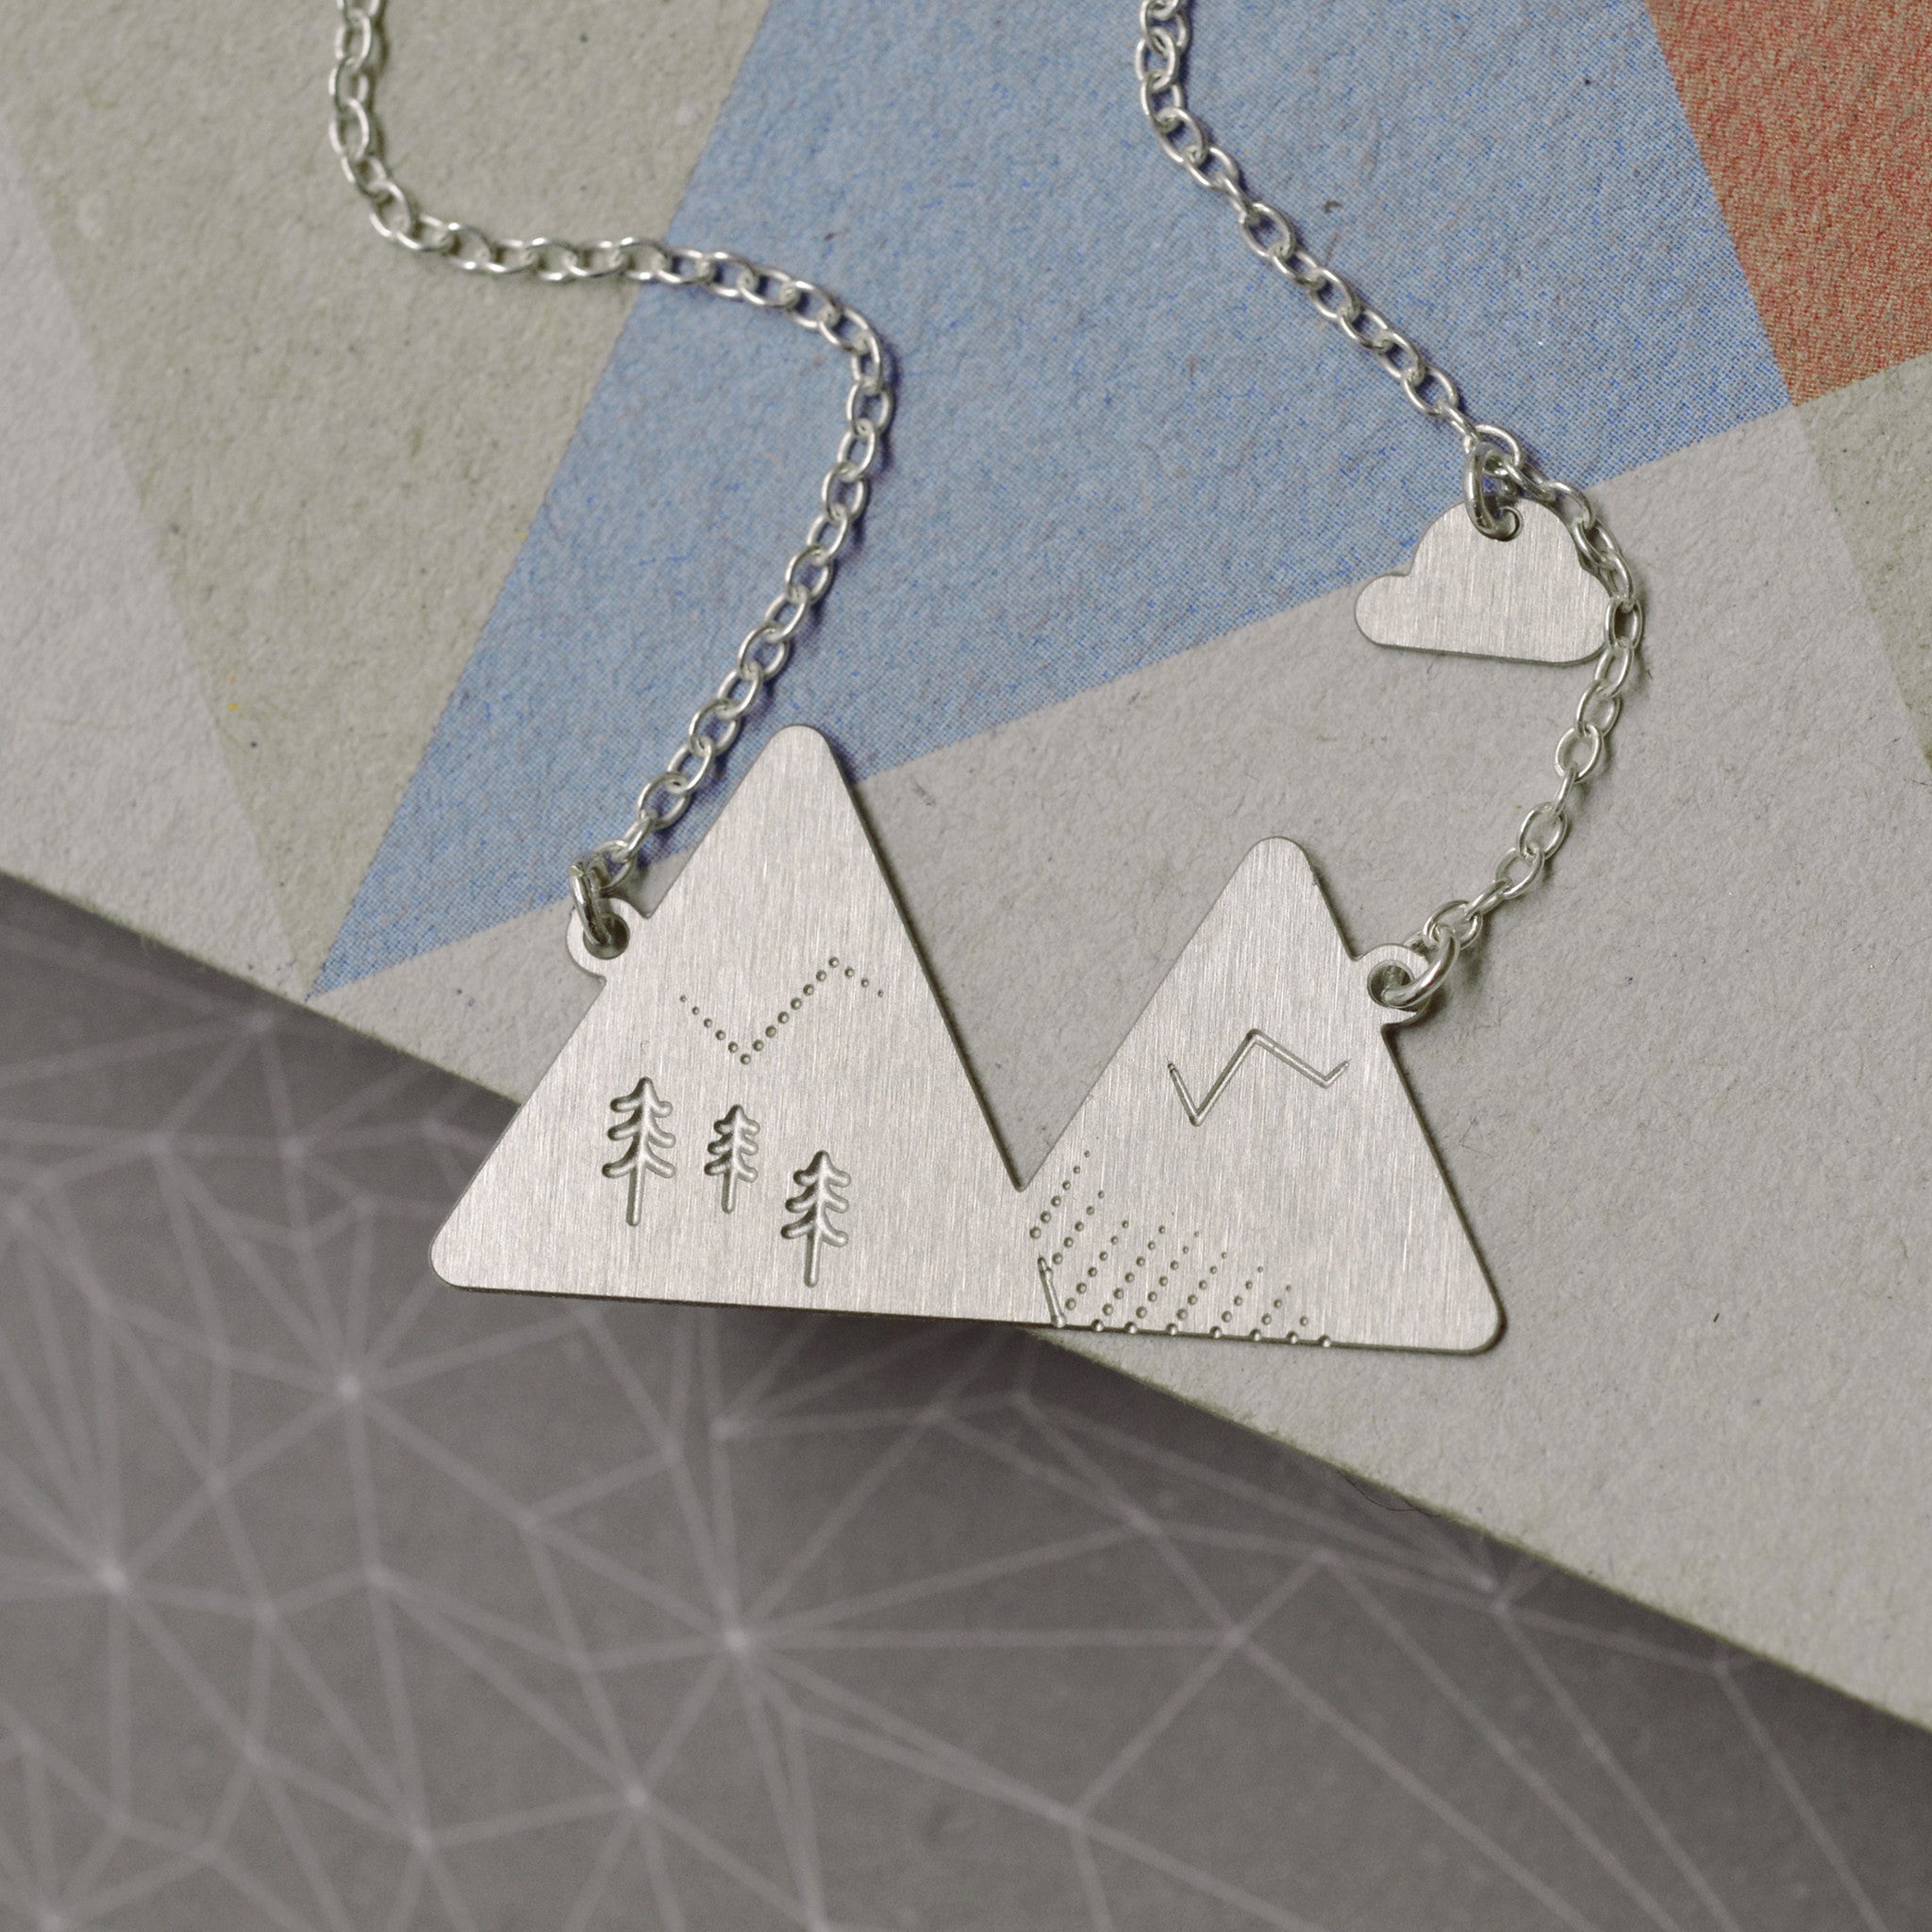 Alps necklace - steel